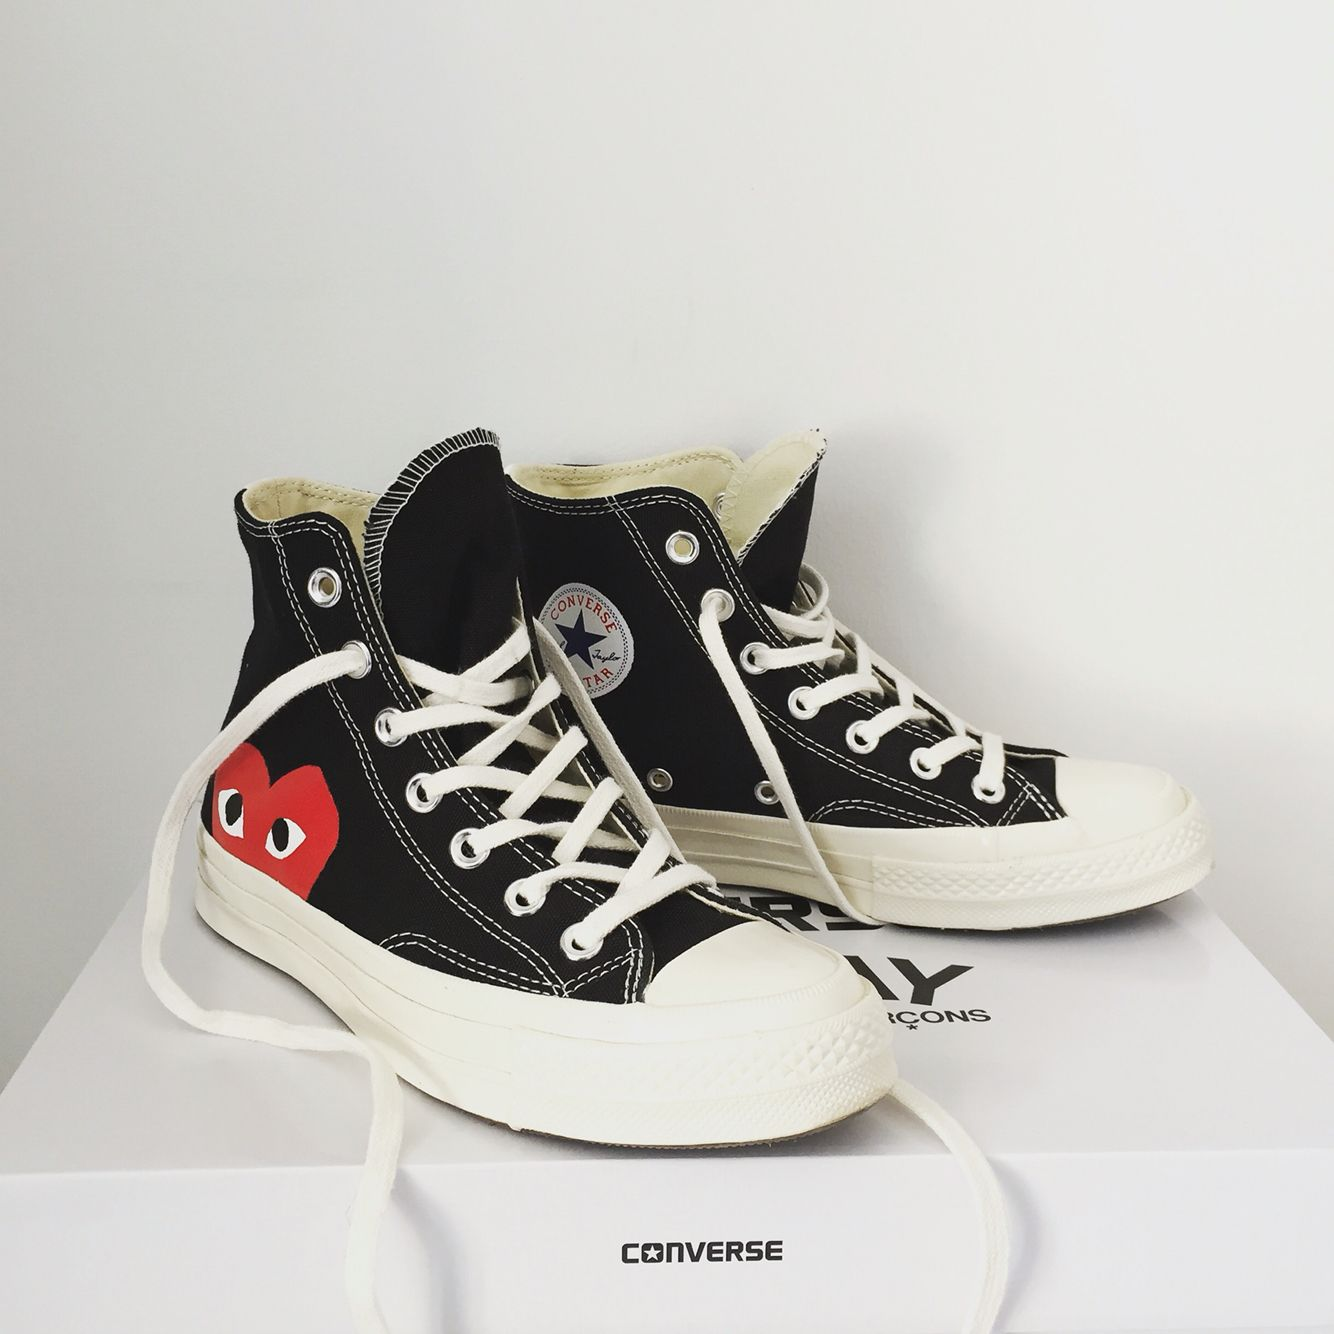 converse comme des garcons play high chuck taylor in black. Black Bedroom Furniture Sets. Home Design Ideas